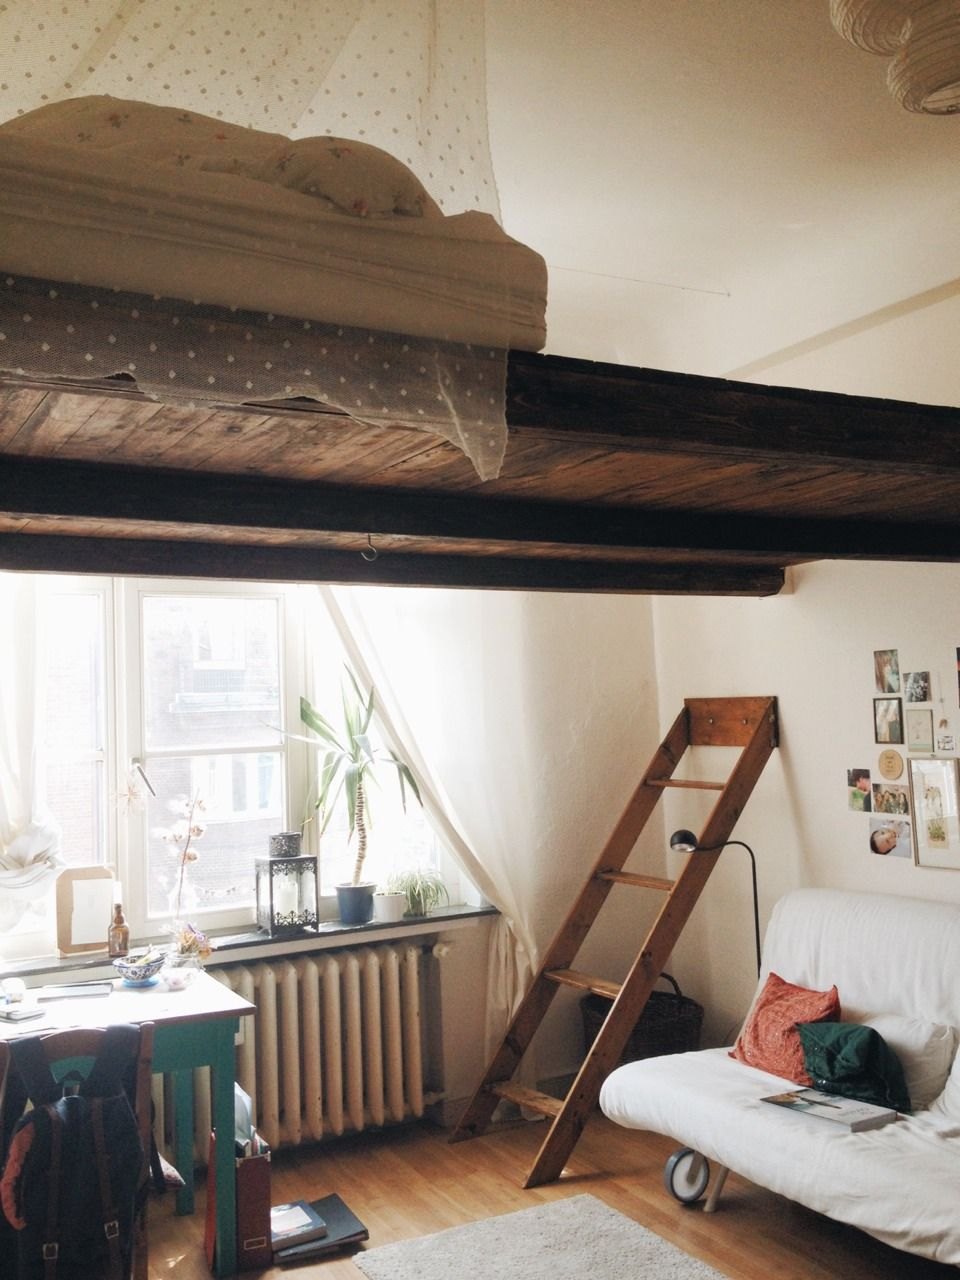 Loft bed ladder ideas  brilliant idea for a studio apartment maybe with hooks along the